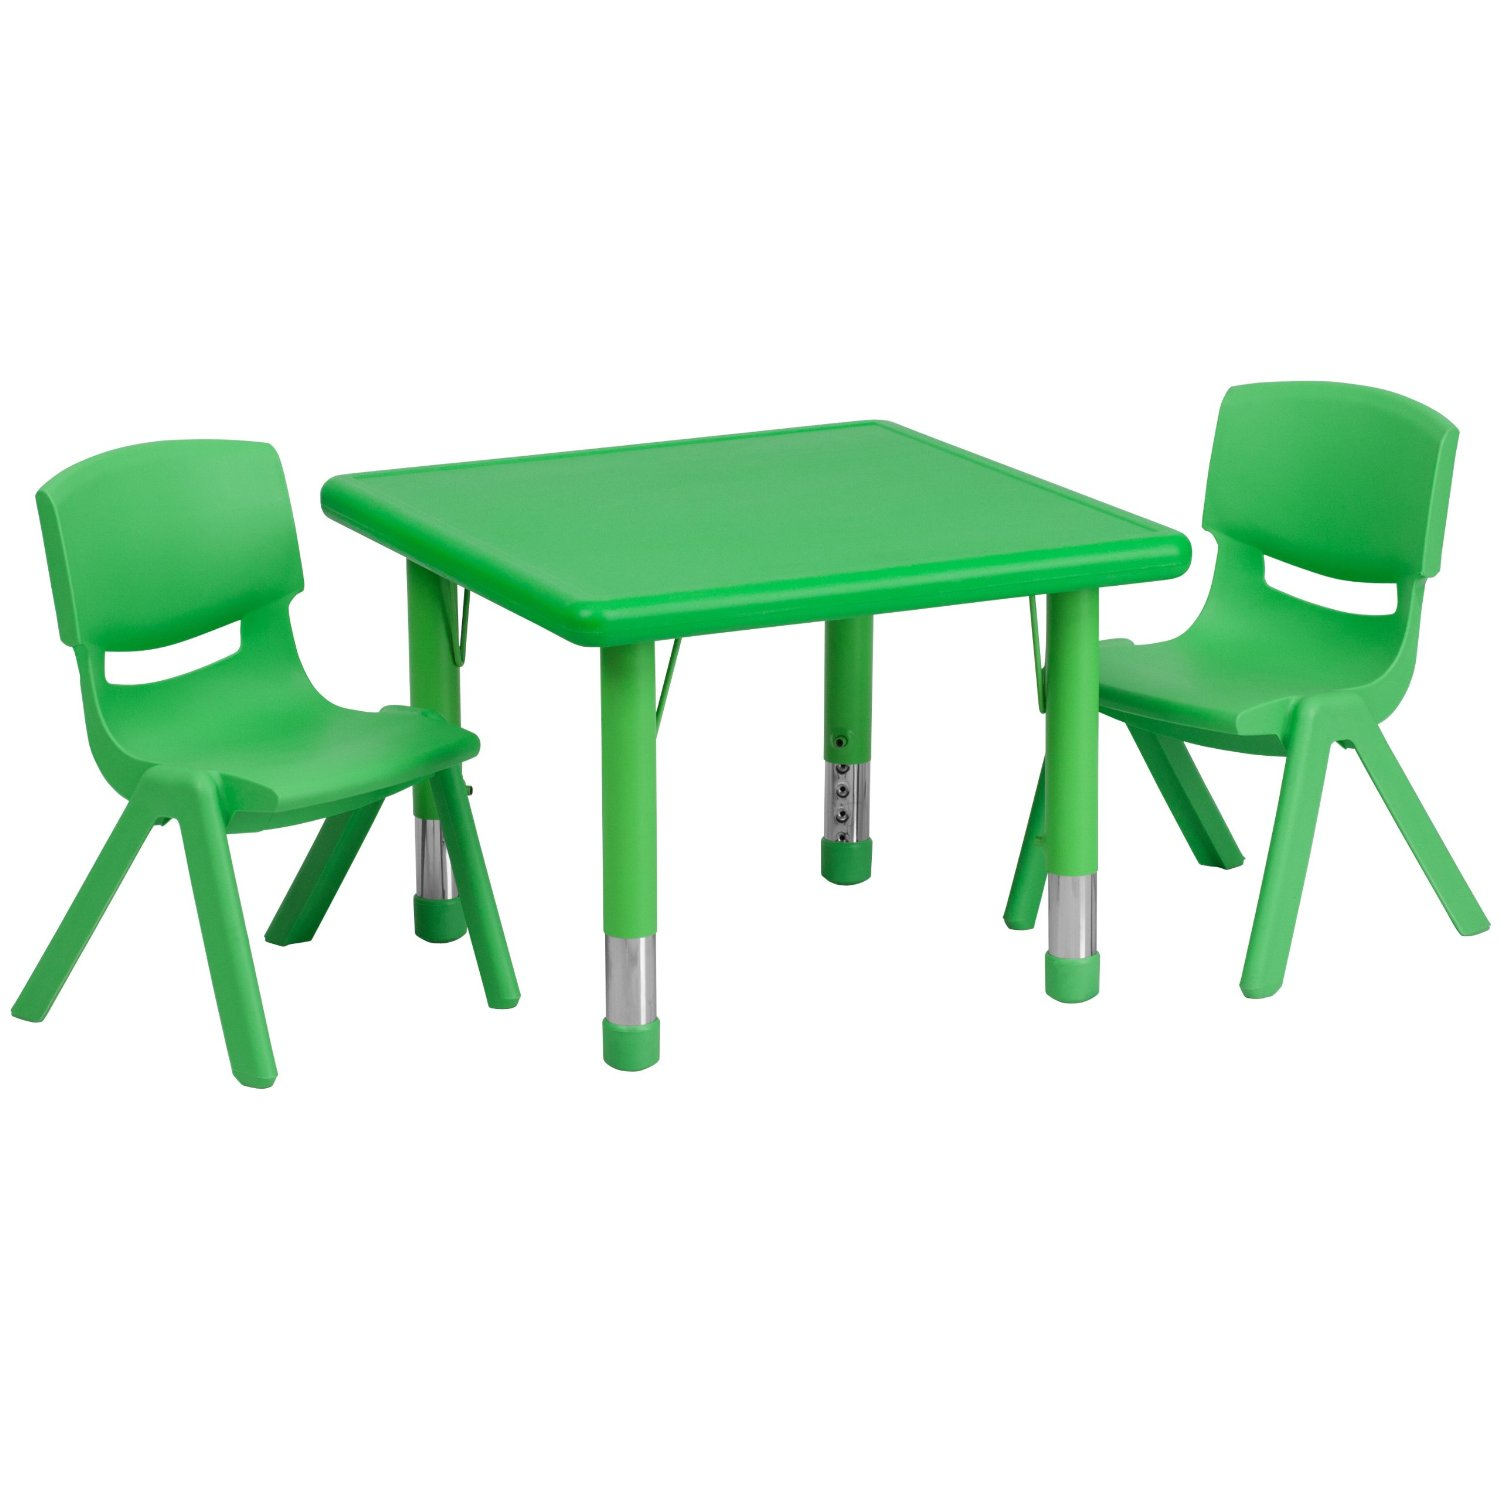 Total Fab: Children's Plastic Table and Chair Sets